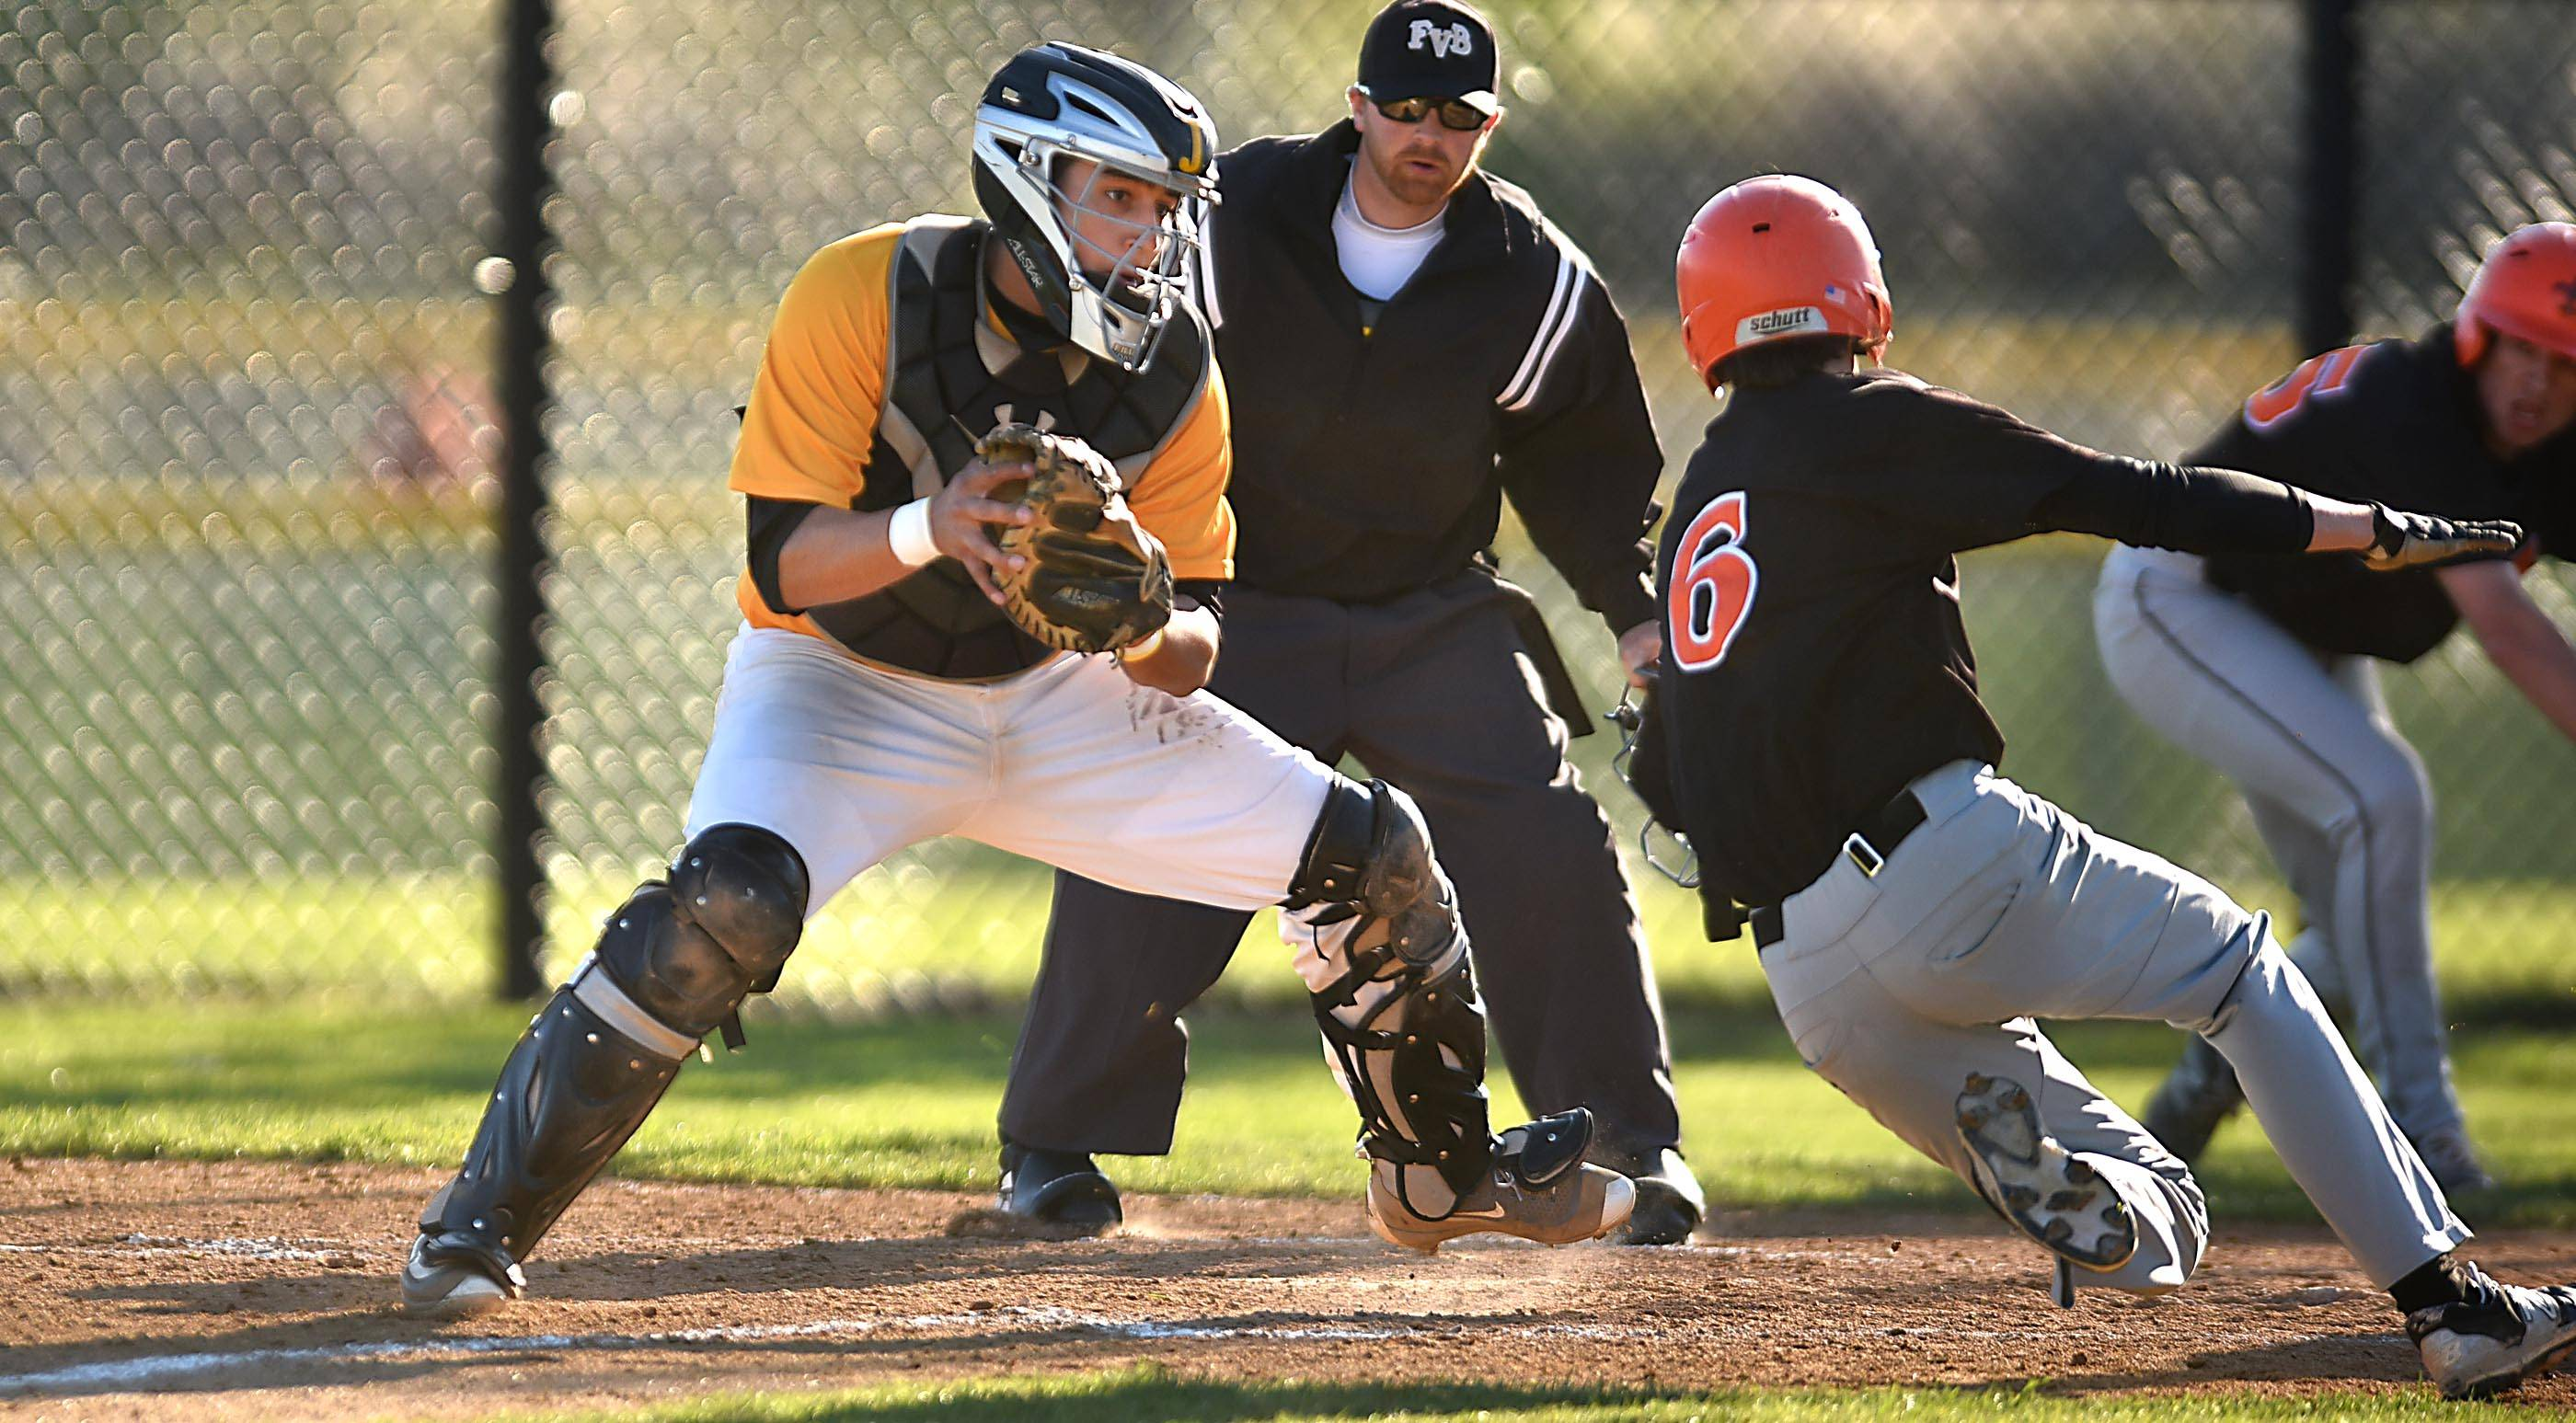 Jacobs catcher Dan Salomon steps in front of the plate to tag out St. Charles East's John Caroll for the first out of the fifth inning Monday in Algonquin.